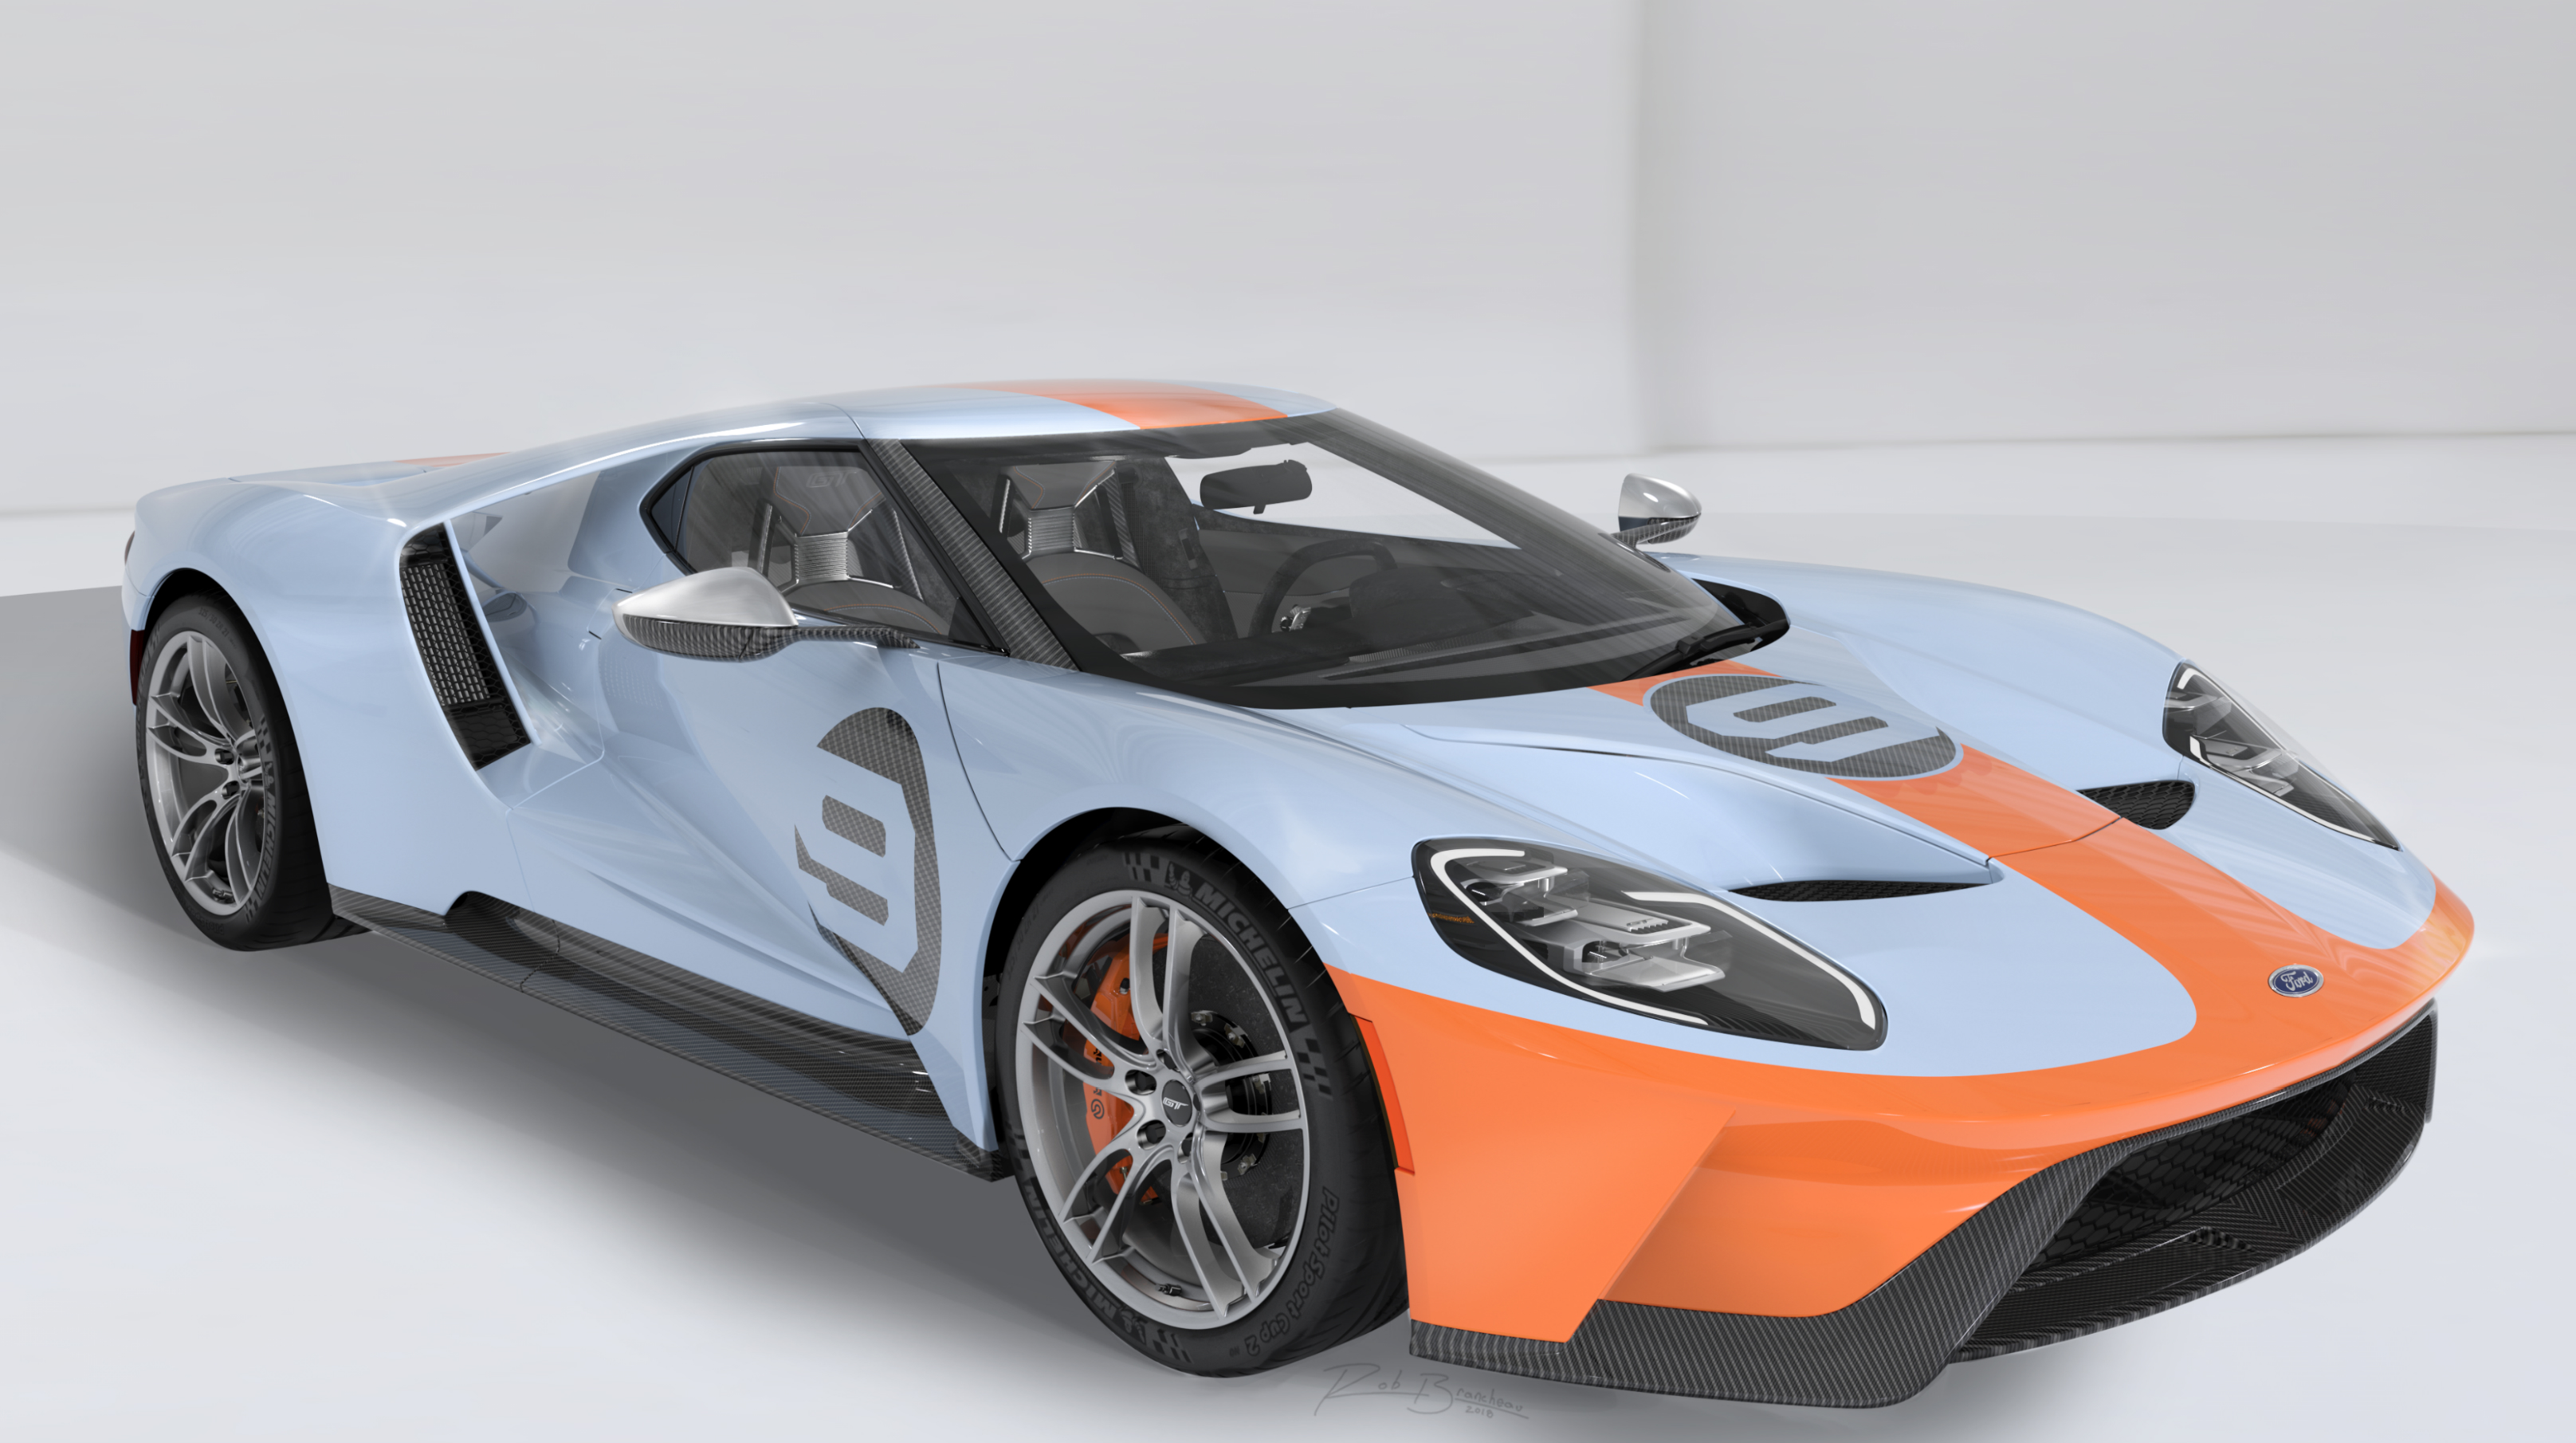 Gulf Oil-livery Heritage Edition